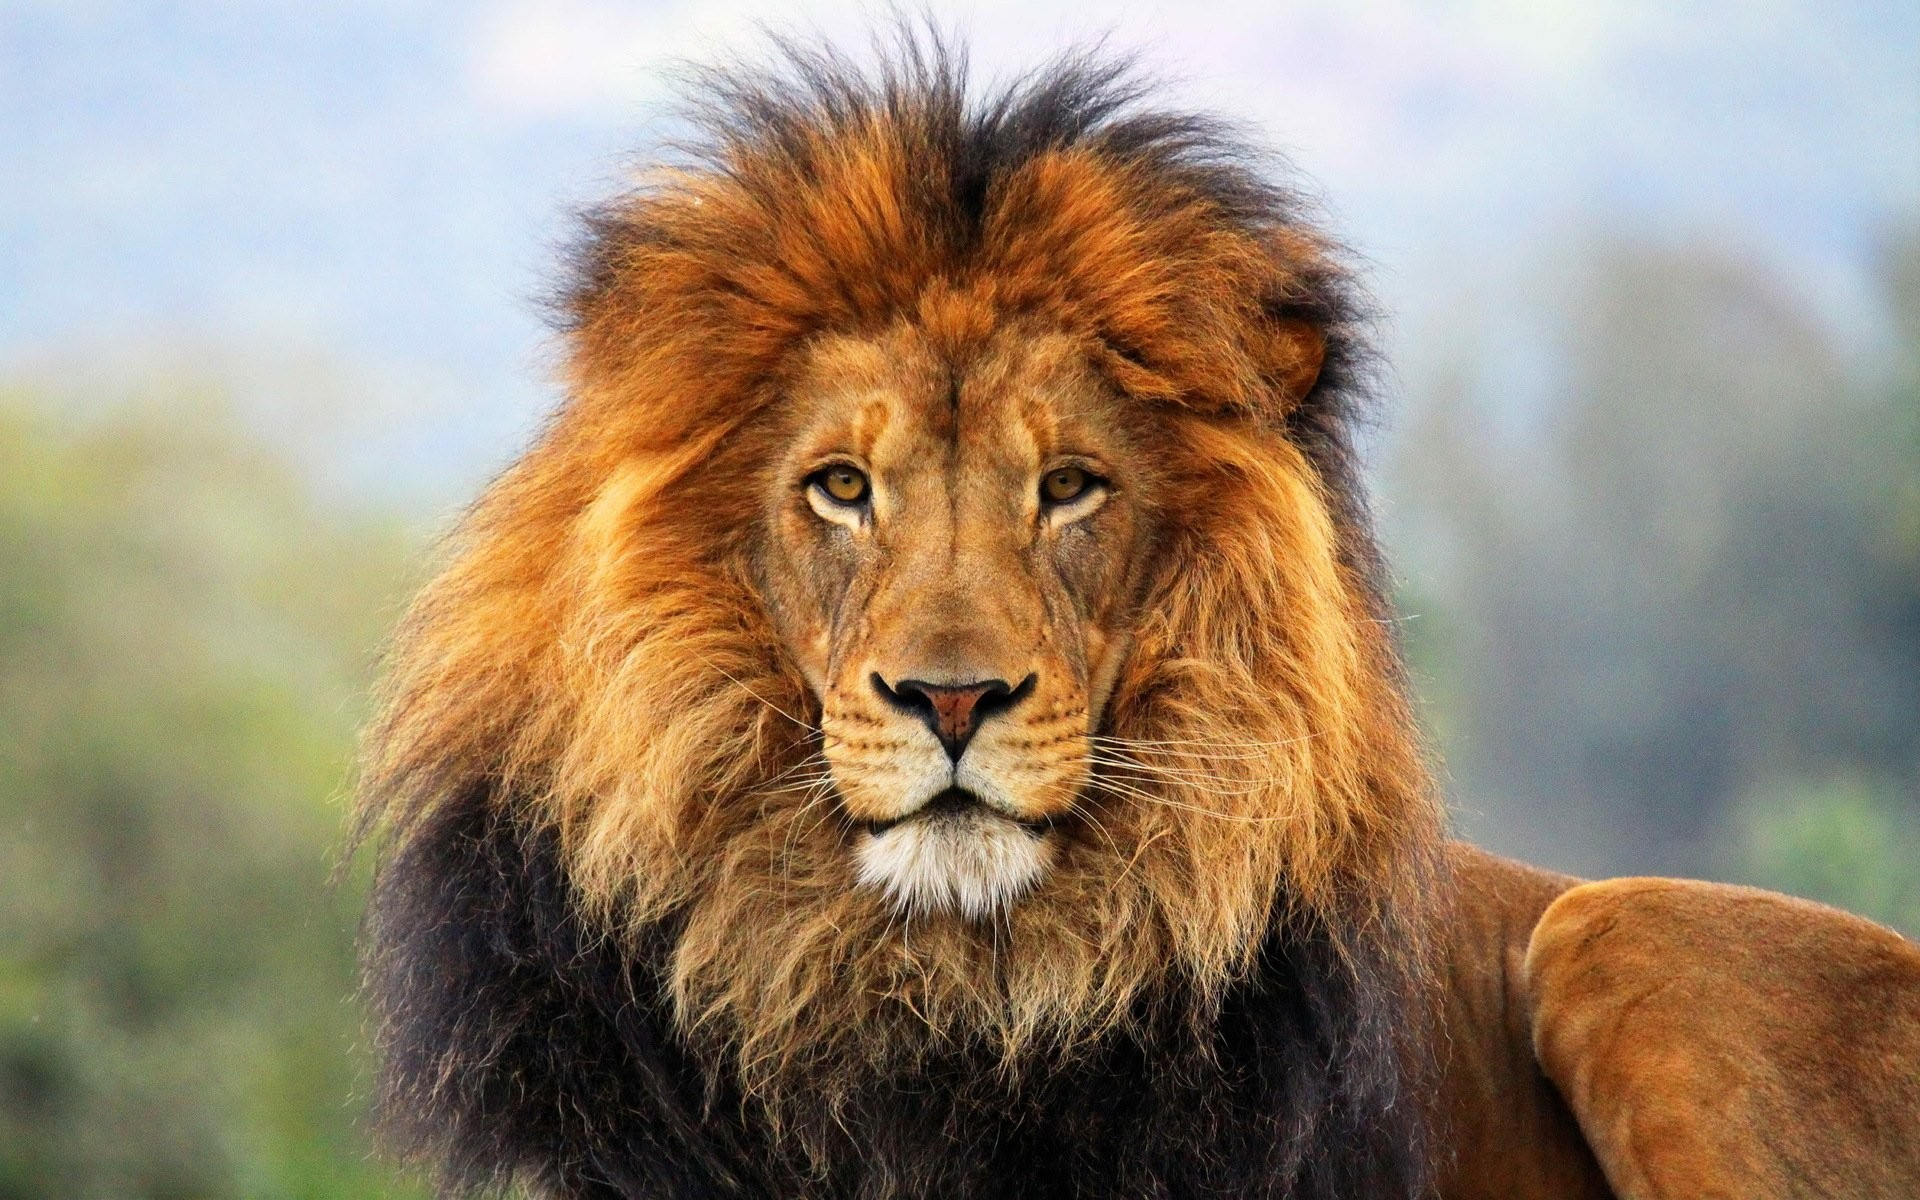 Lion Wallpaper Download Free Beautiful Full Hd Wallpapers For